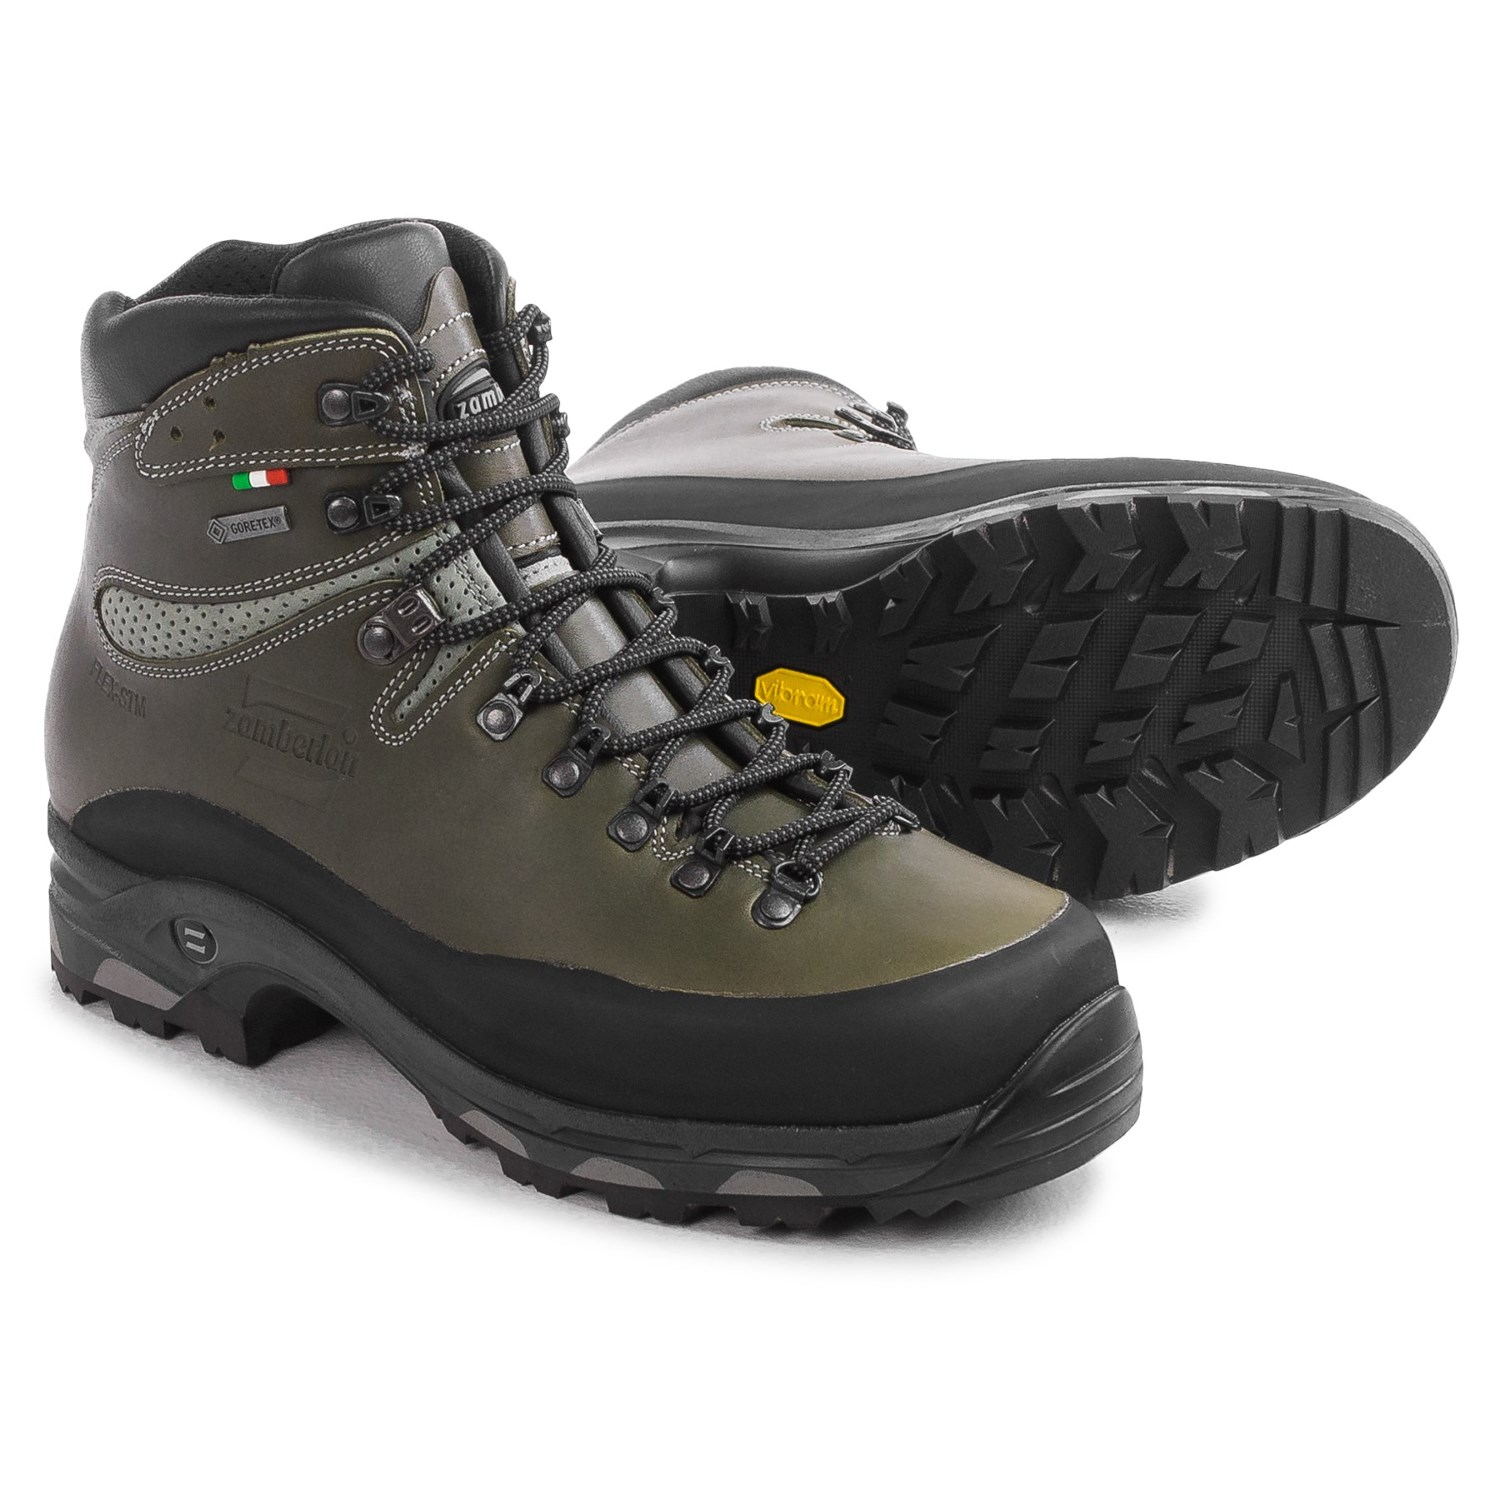 Zamberlan New Vioz Plus Gore Tex 174 Rr Hunting Boots For